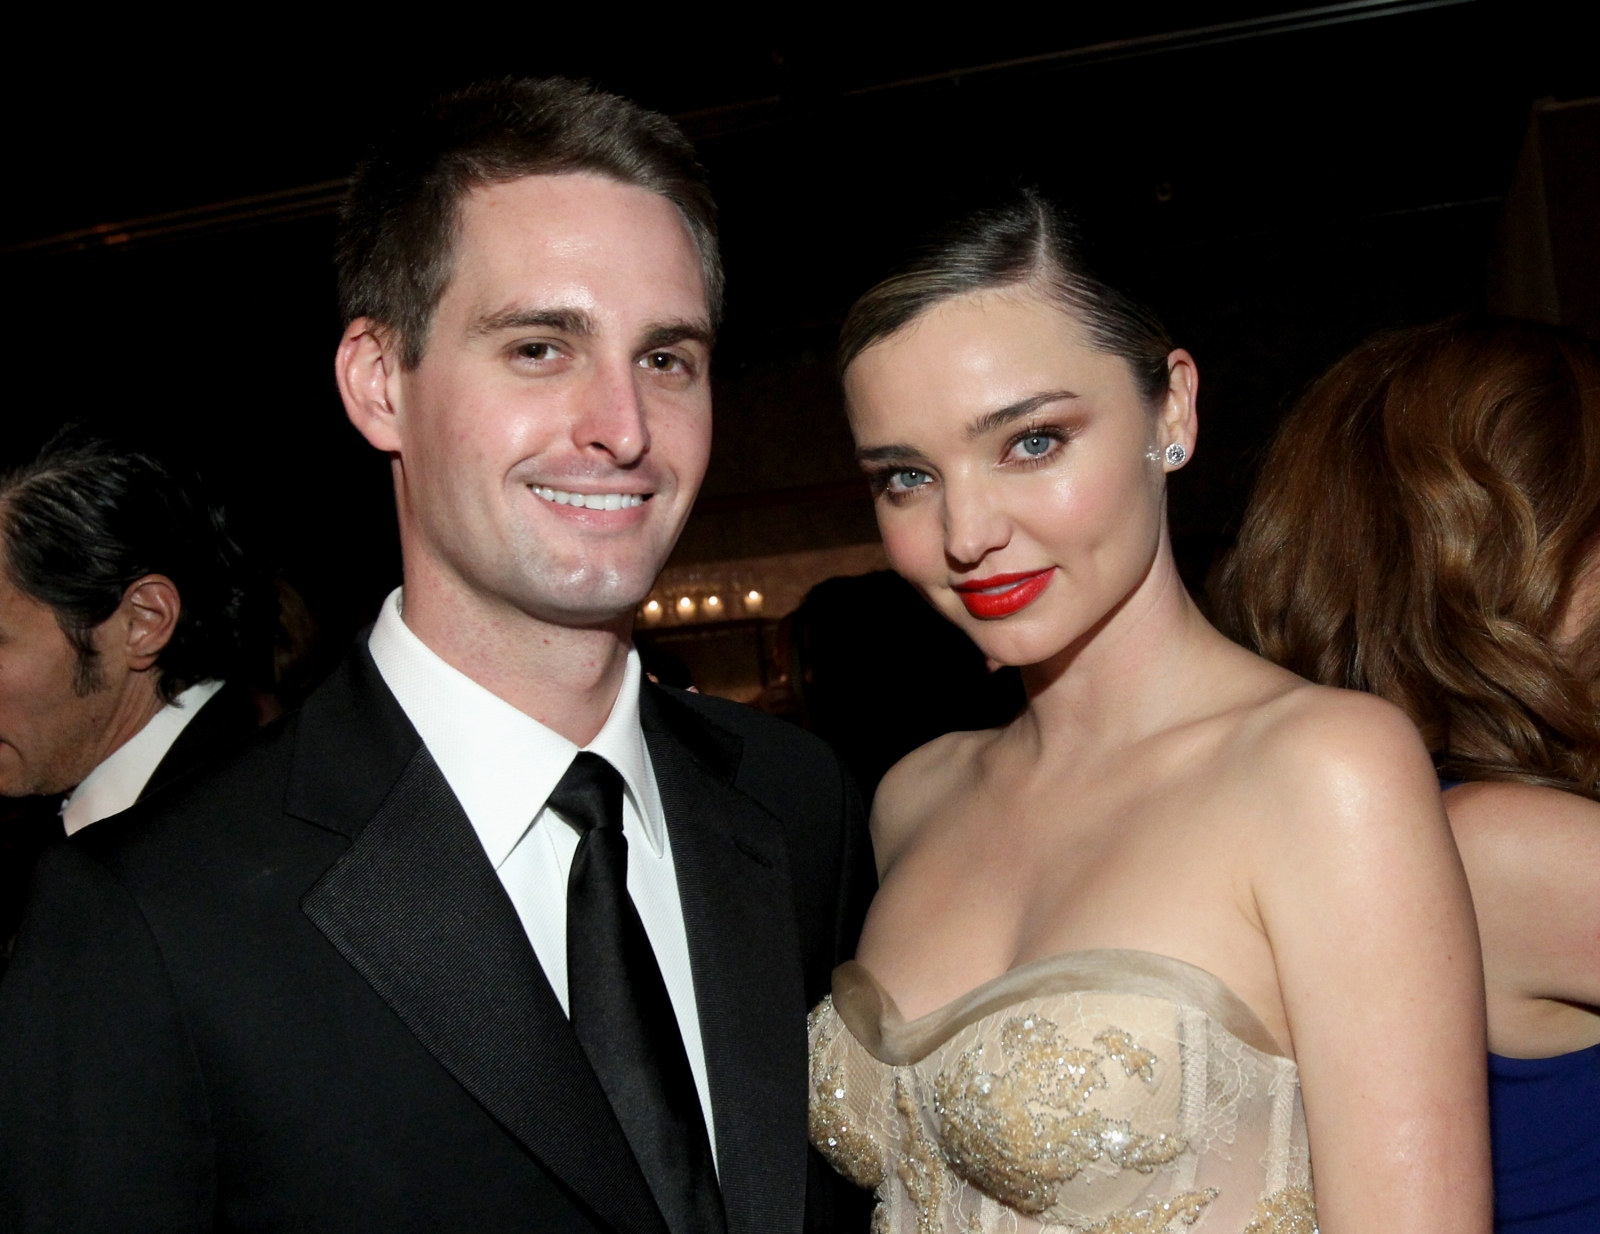 FIRST PHOTOS: Inside Miranda Kerr's Lavish Wedding!